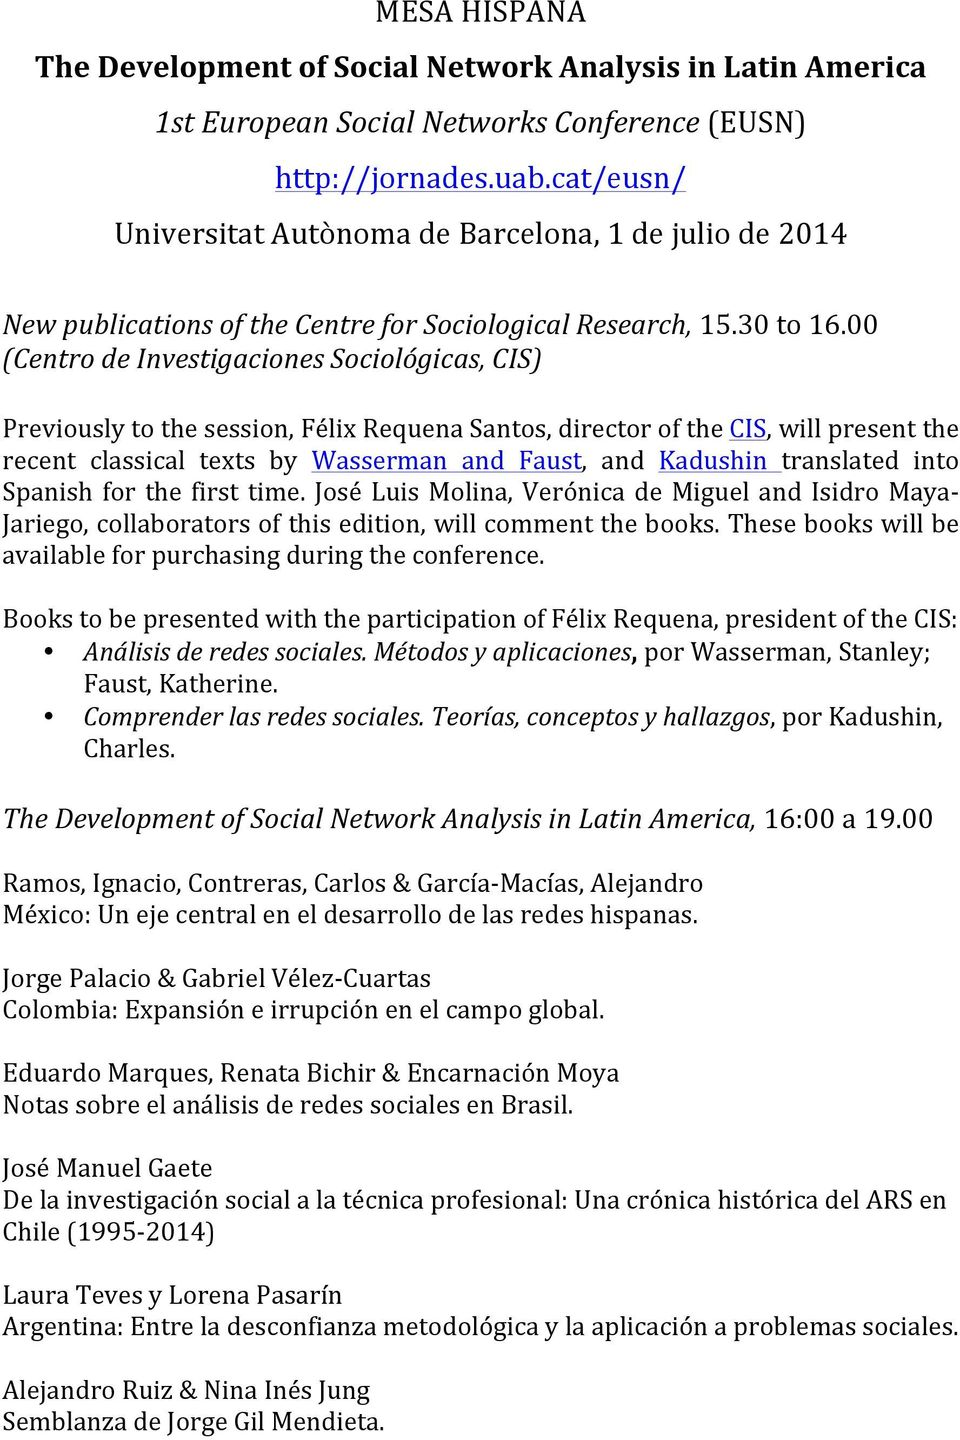 00 (Centro de Investigaciones Sociológicas, CIS) Previously to the session, Félix Requena Santos, director of the CIS, will present the recent classical texts by Wasserman and Faust, and Kadushin